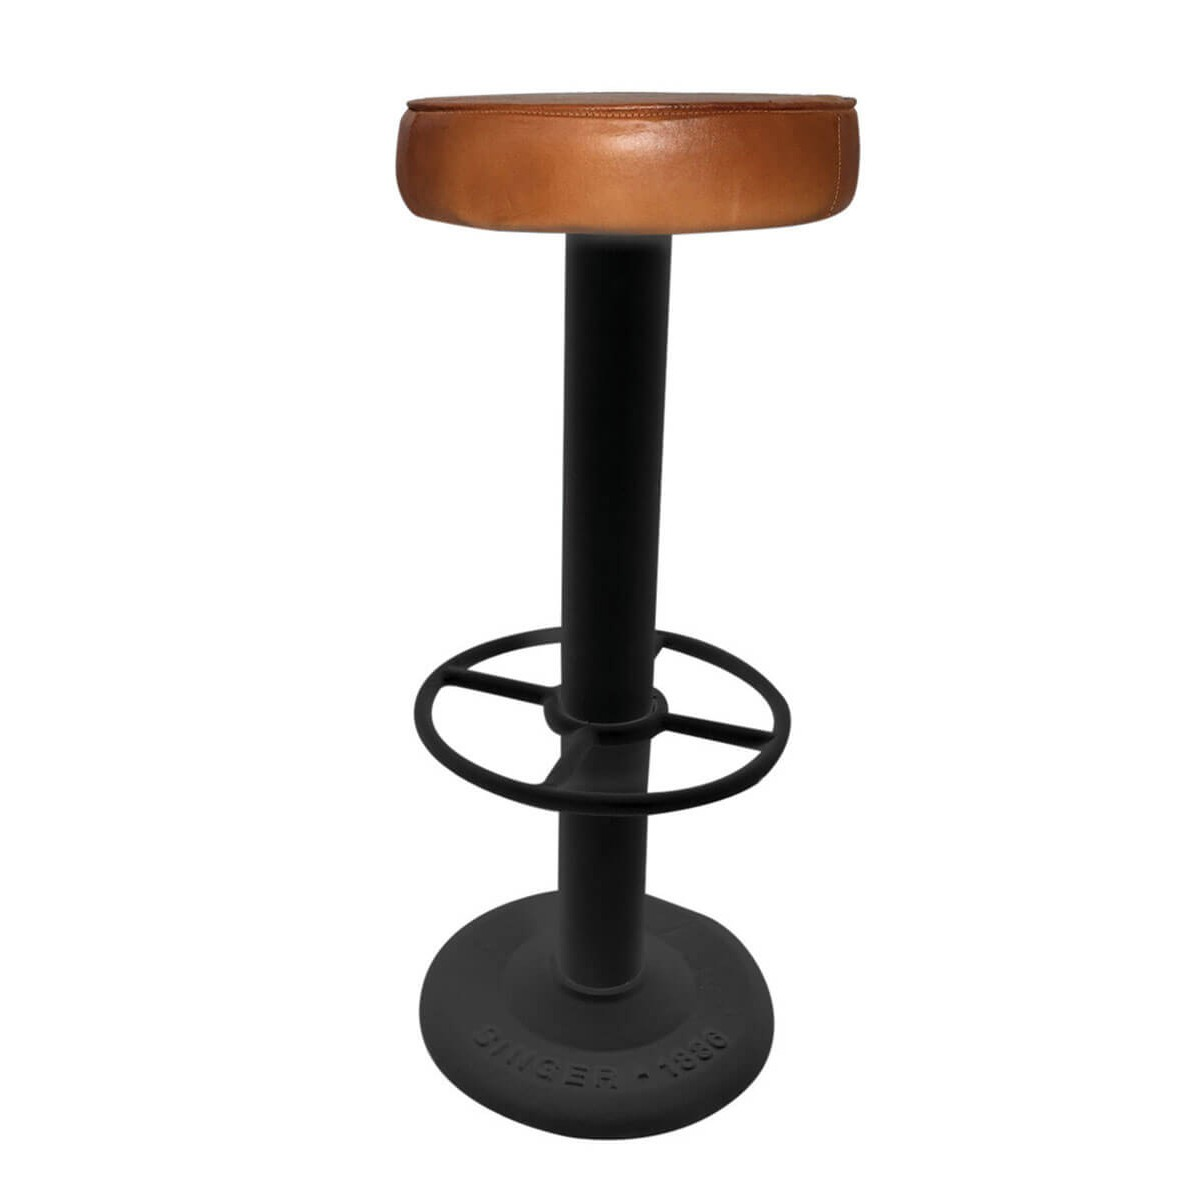 tabouret de bar style industriel cuir et m tal noir pub zago store. Black Bedroom Furniture Sets. Home Design Ideas